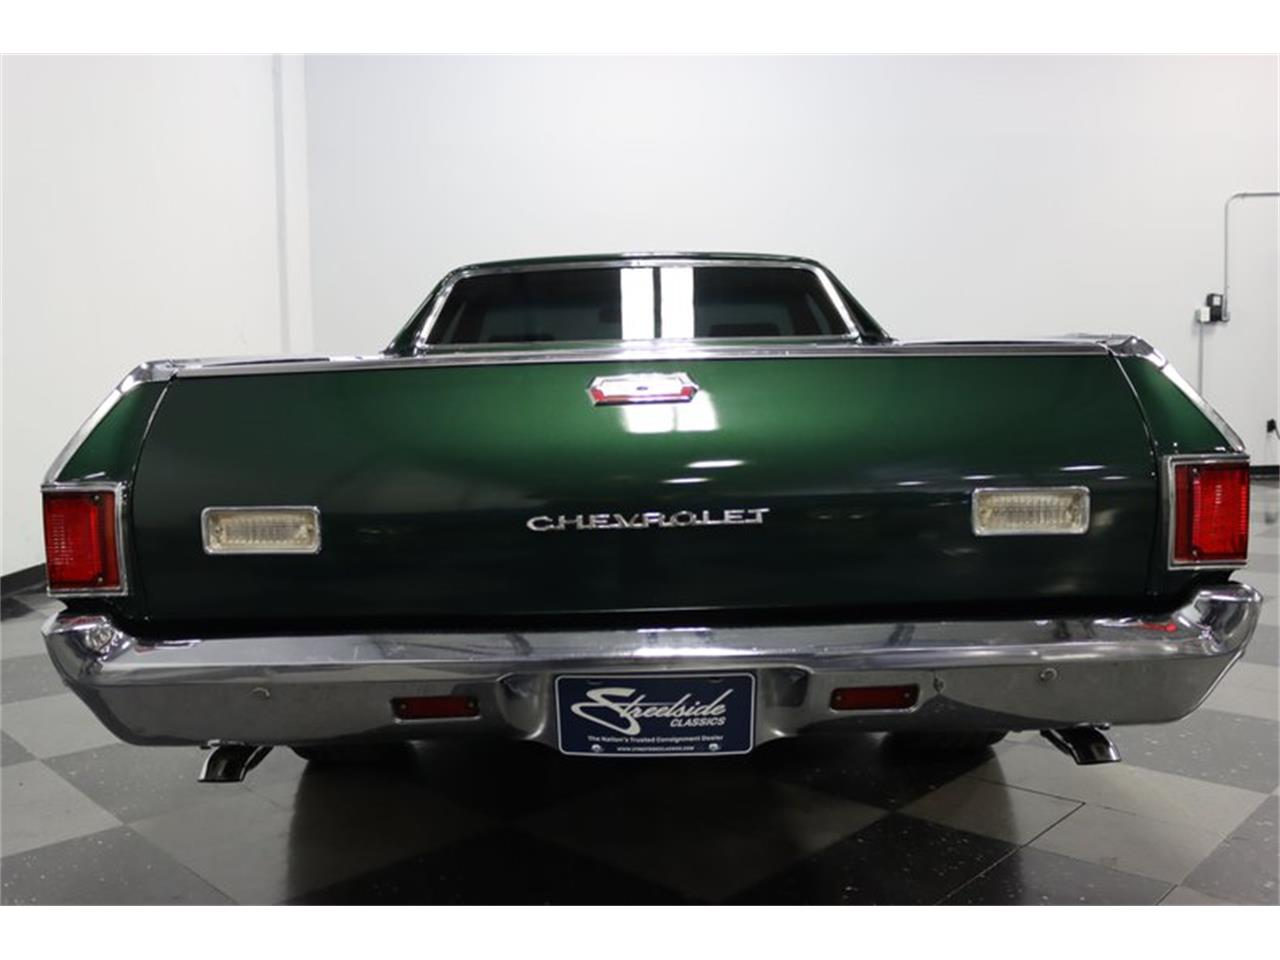 1970 Chevrolet El Camino (CC-1385741) for sale in Ft Worth, Texas